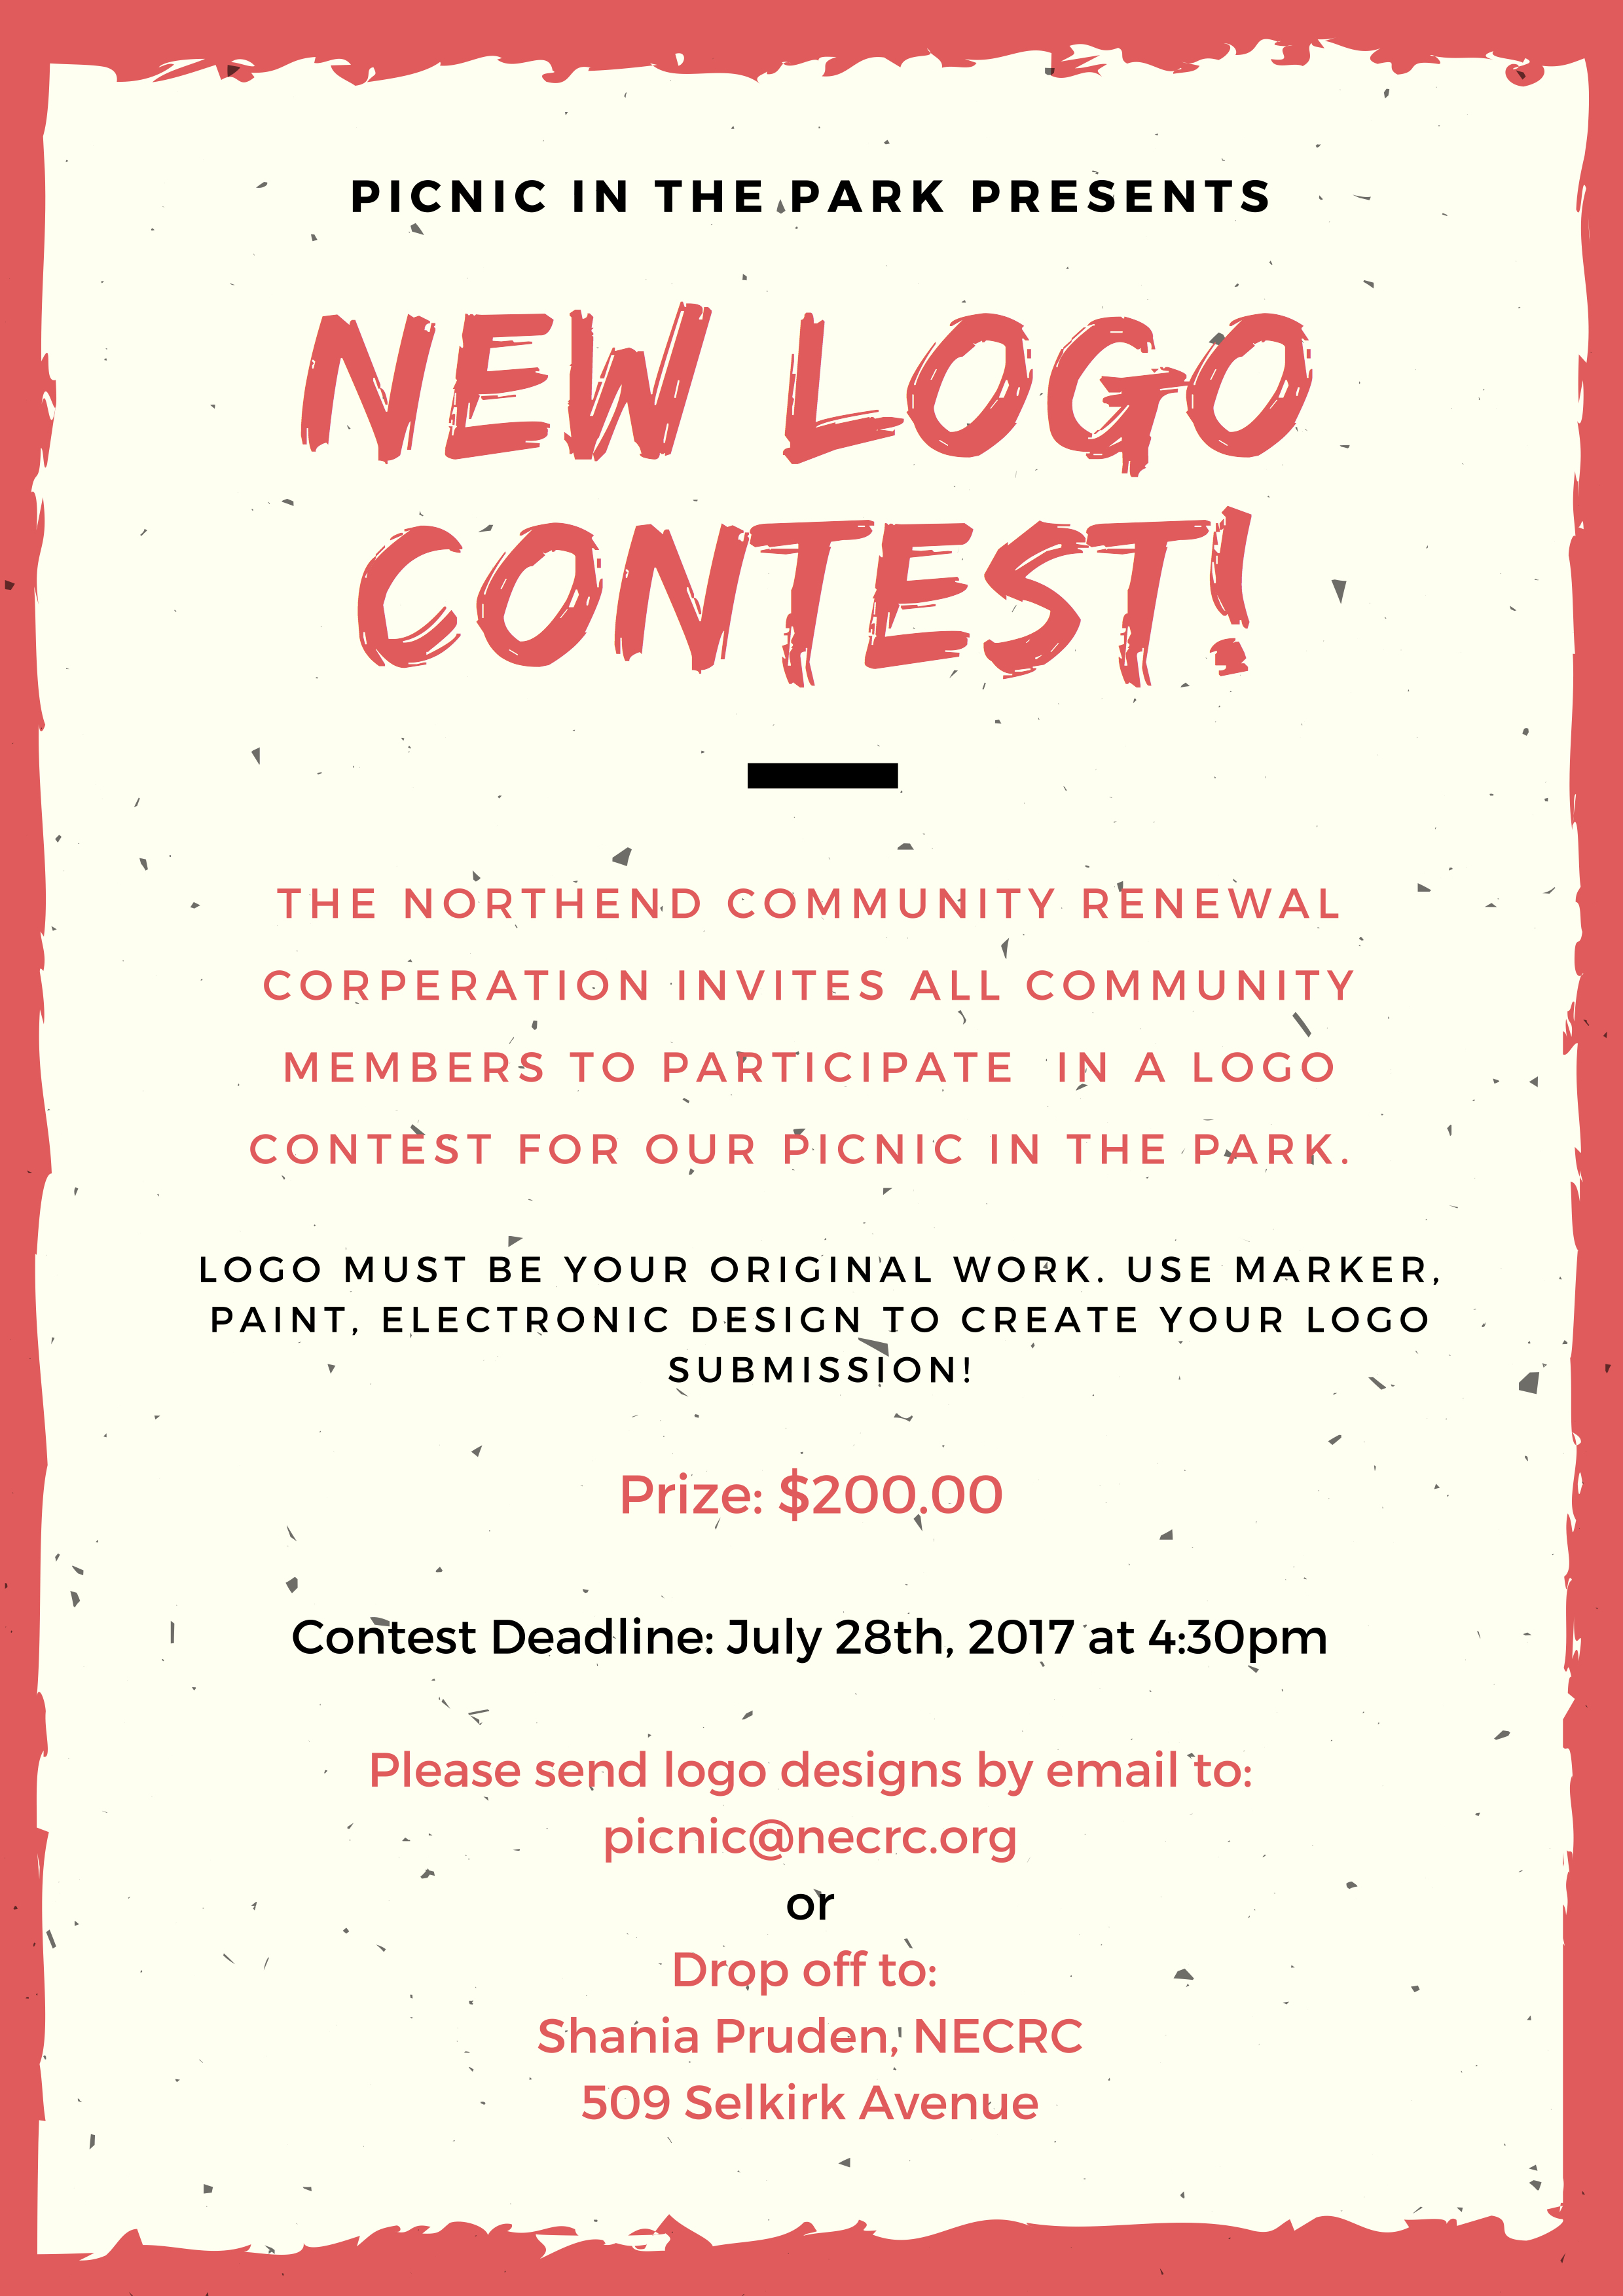 2017 Picnic in the Park Logo Contest.